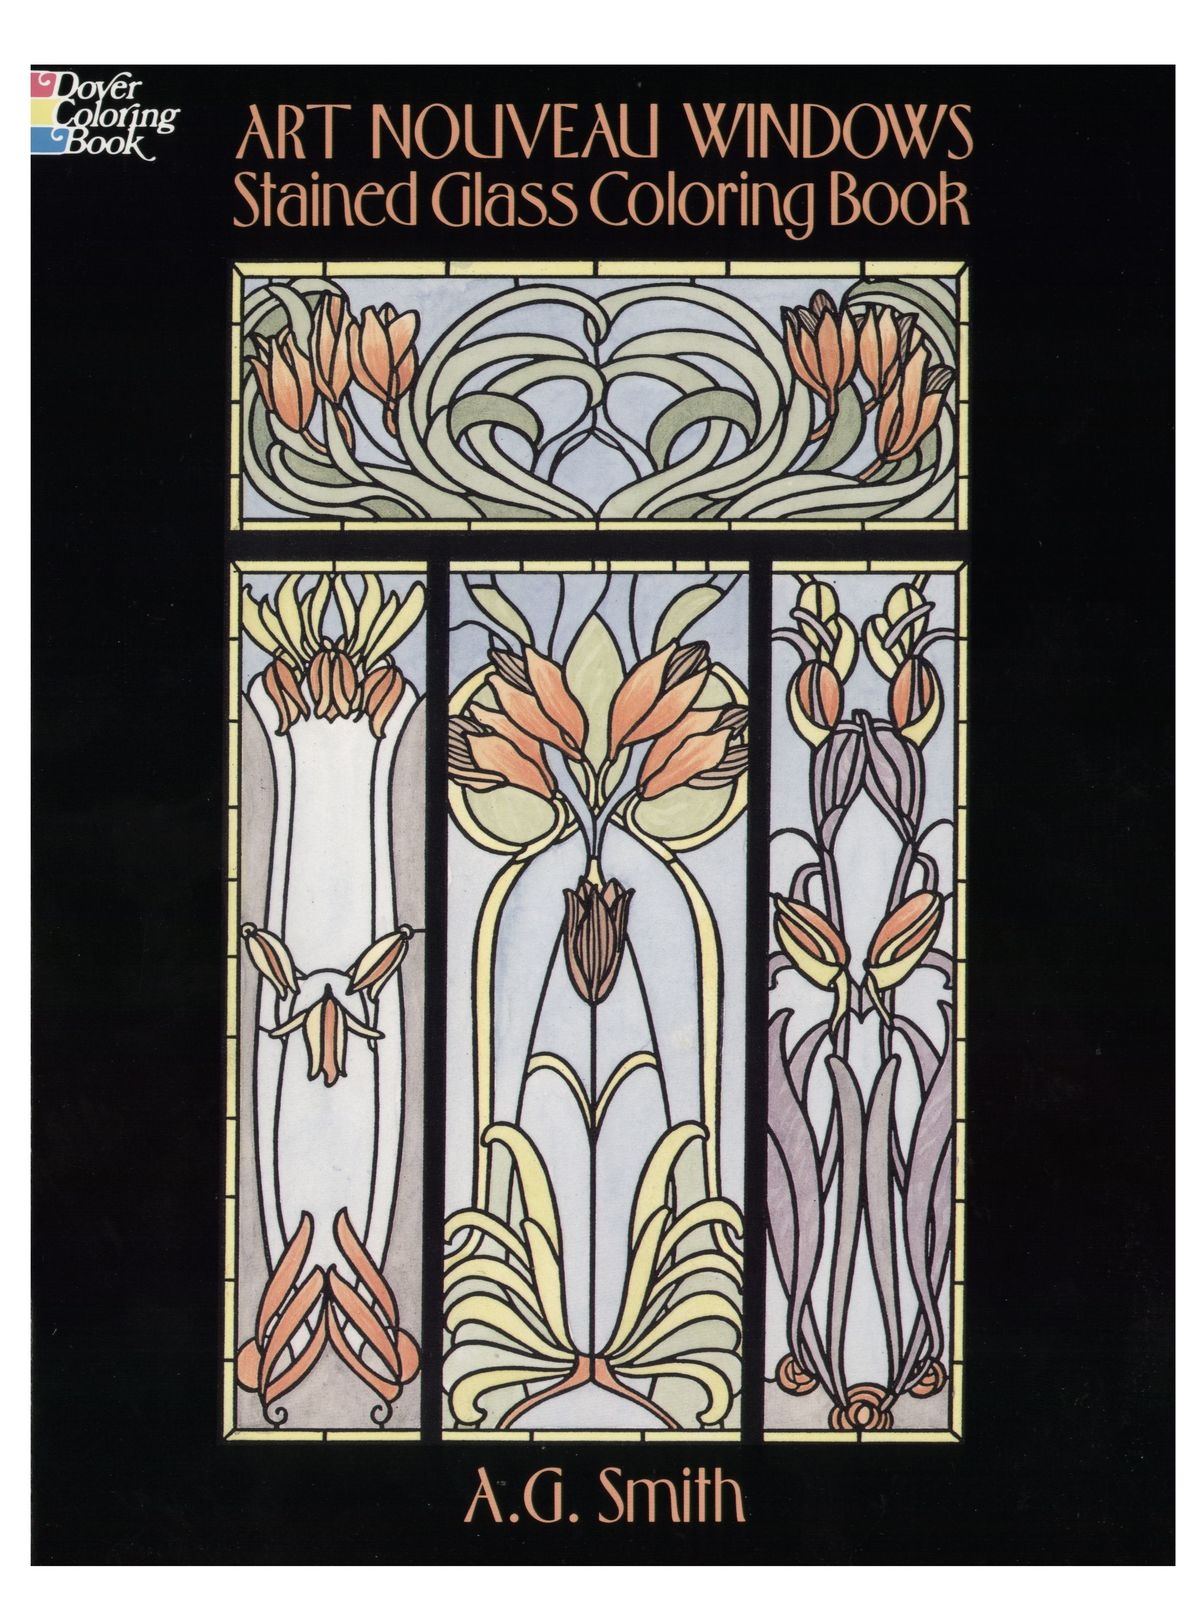 Dover - Art Nouveau Windows Stained Glass Coloring Book